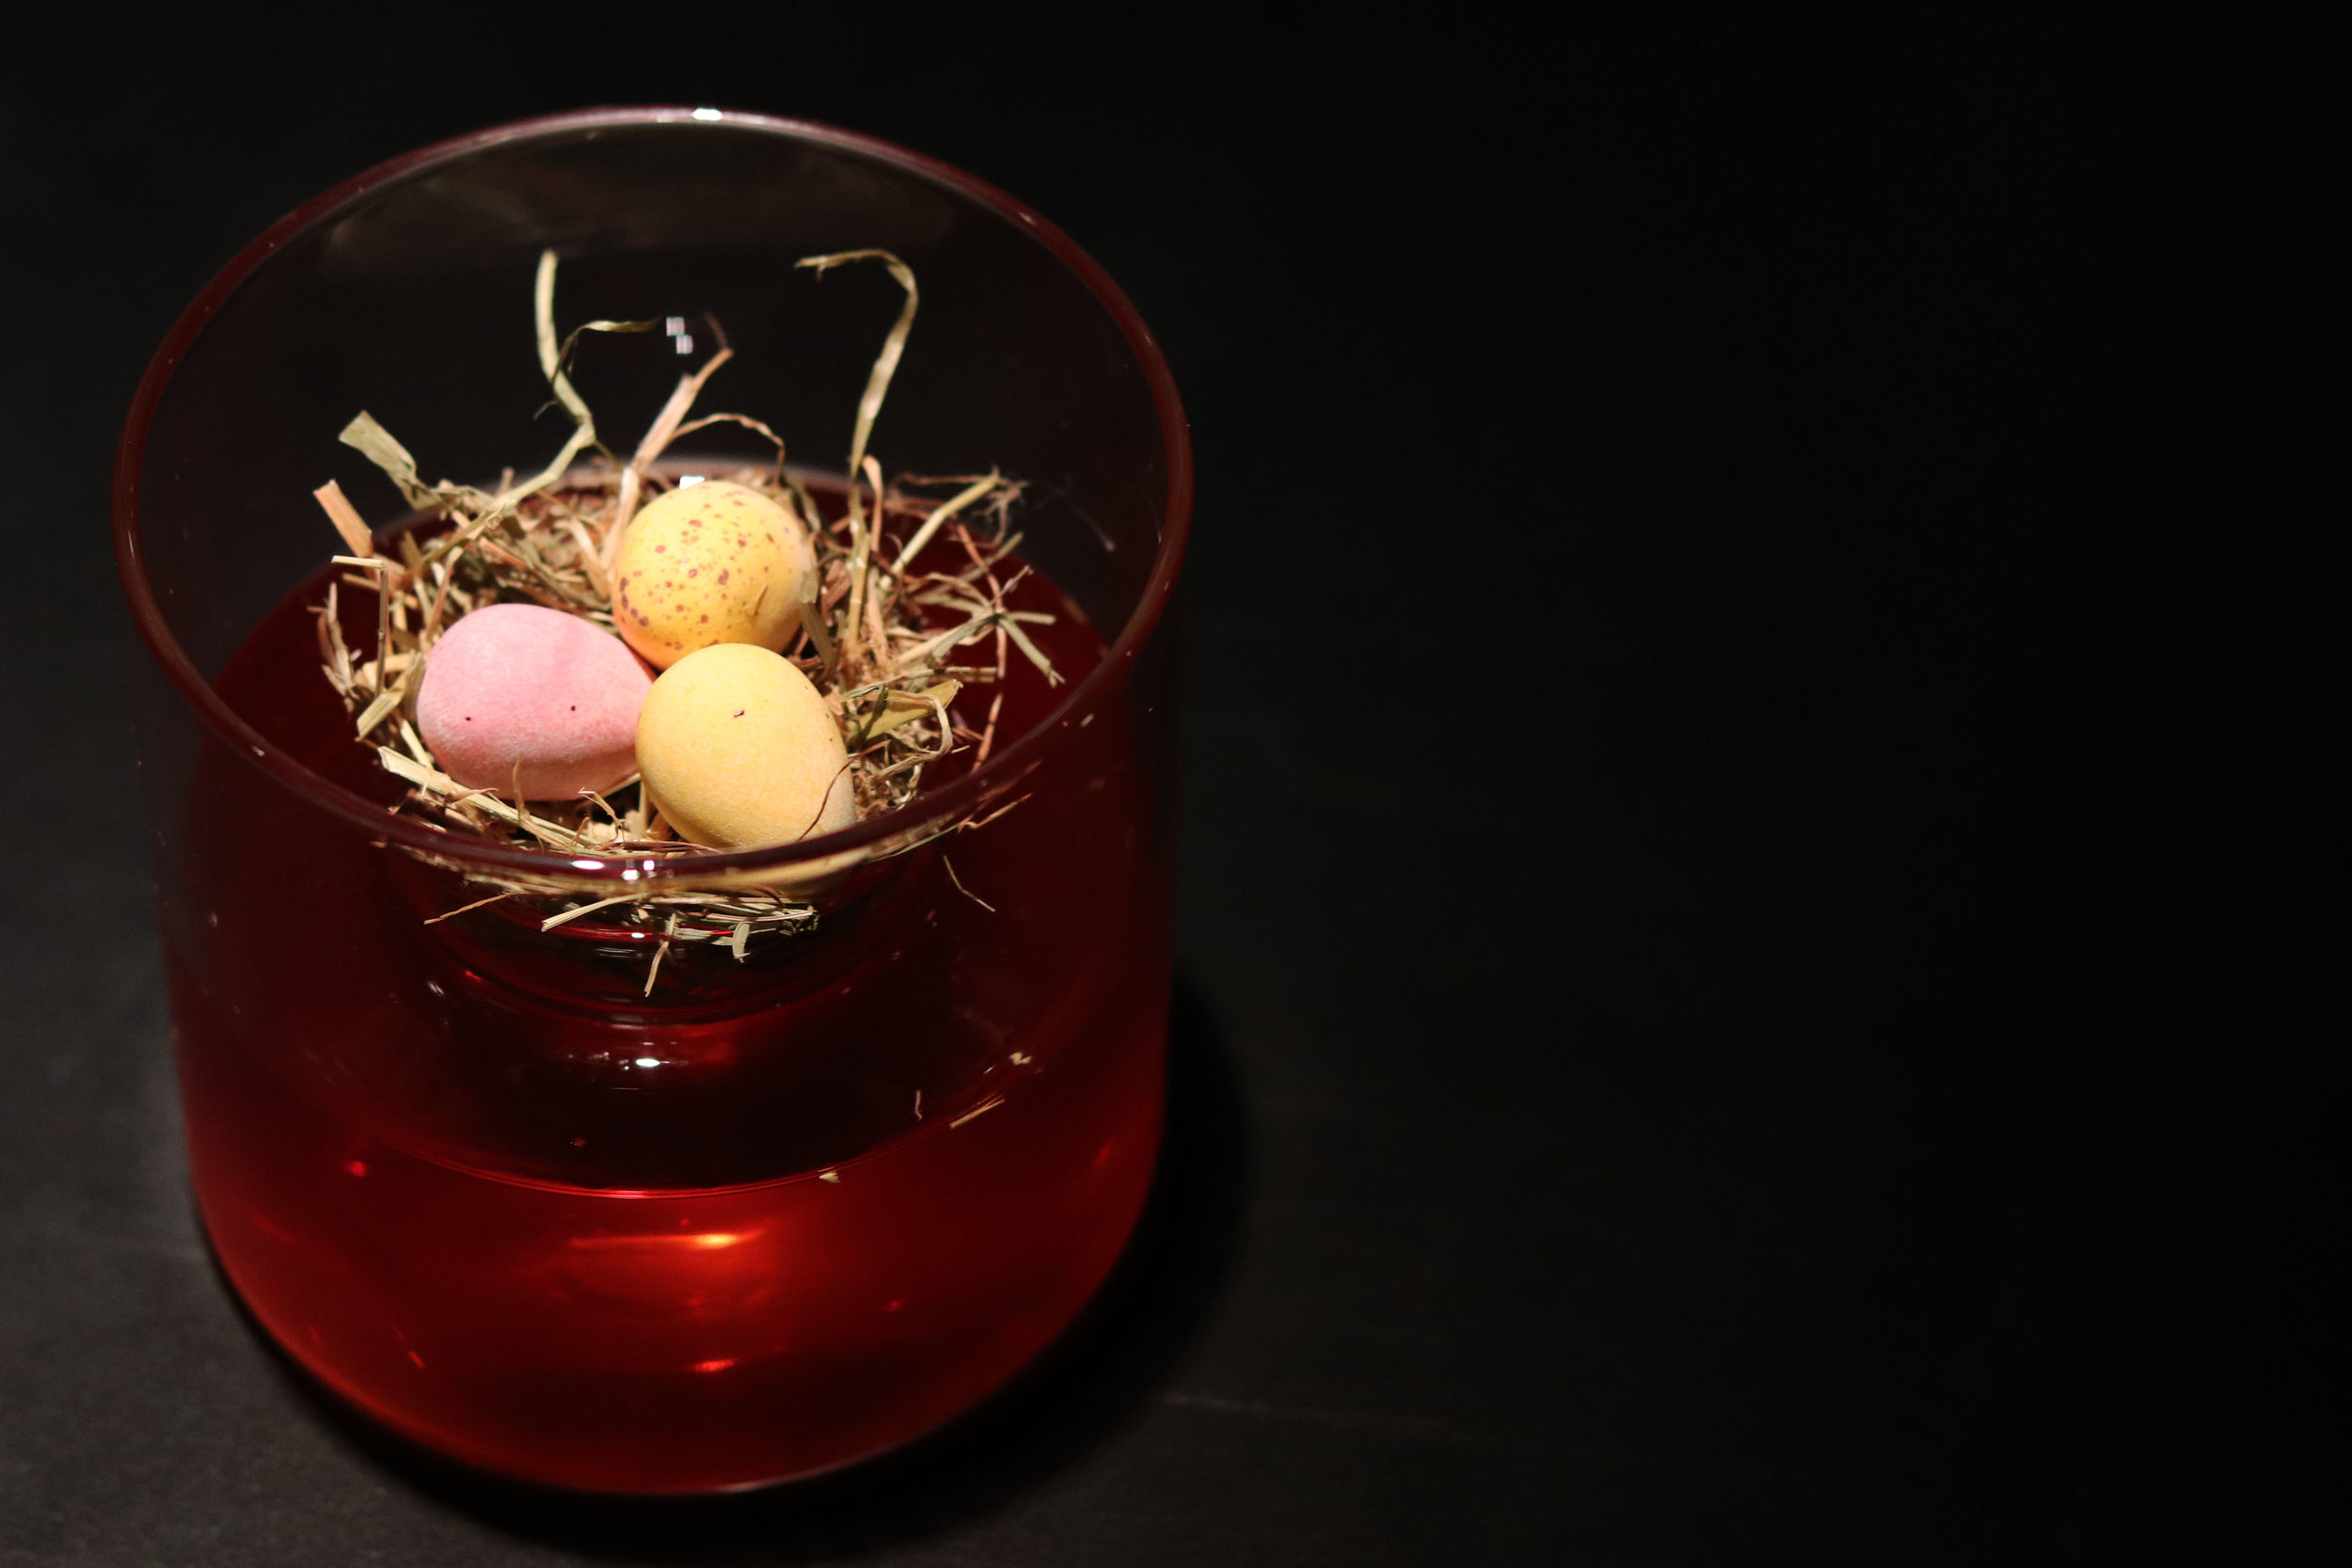 Nest created as an easter special for our BLOG